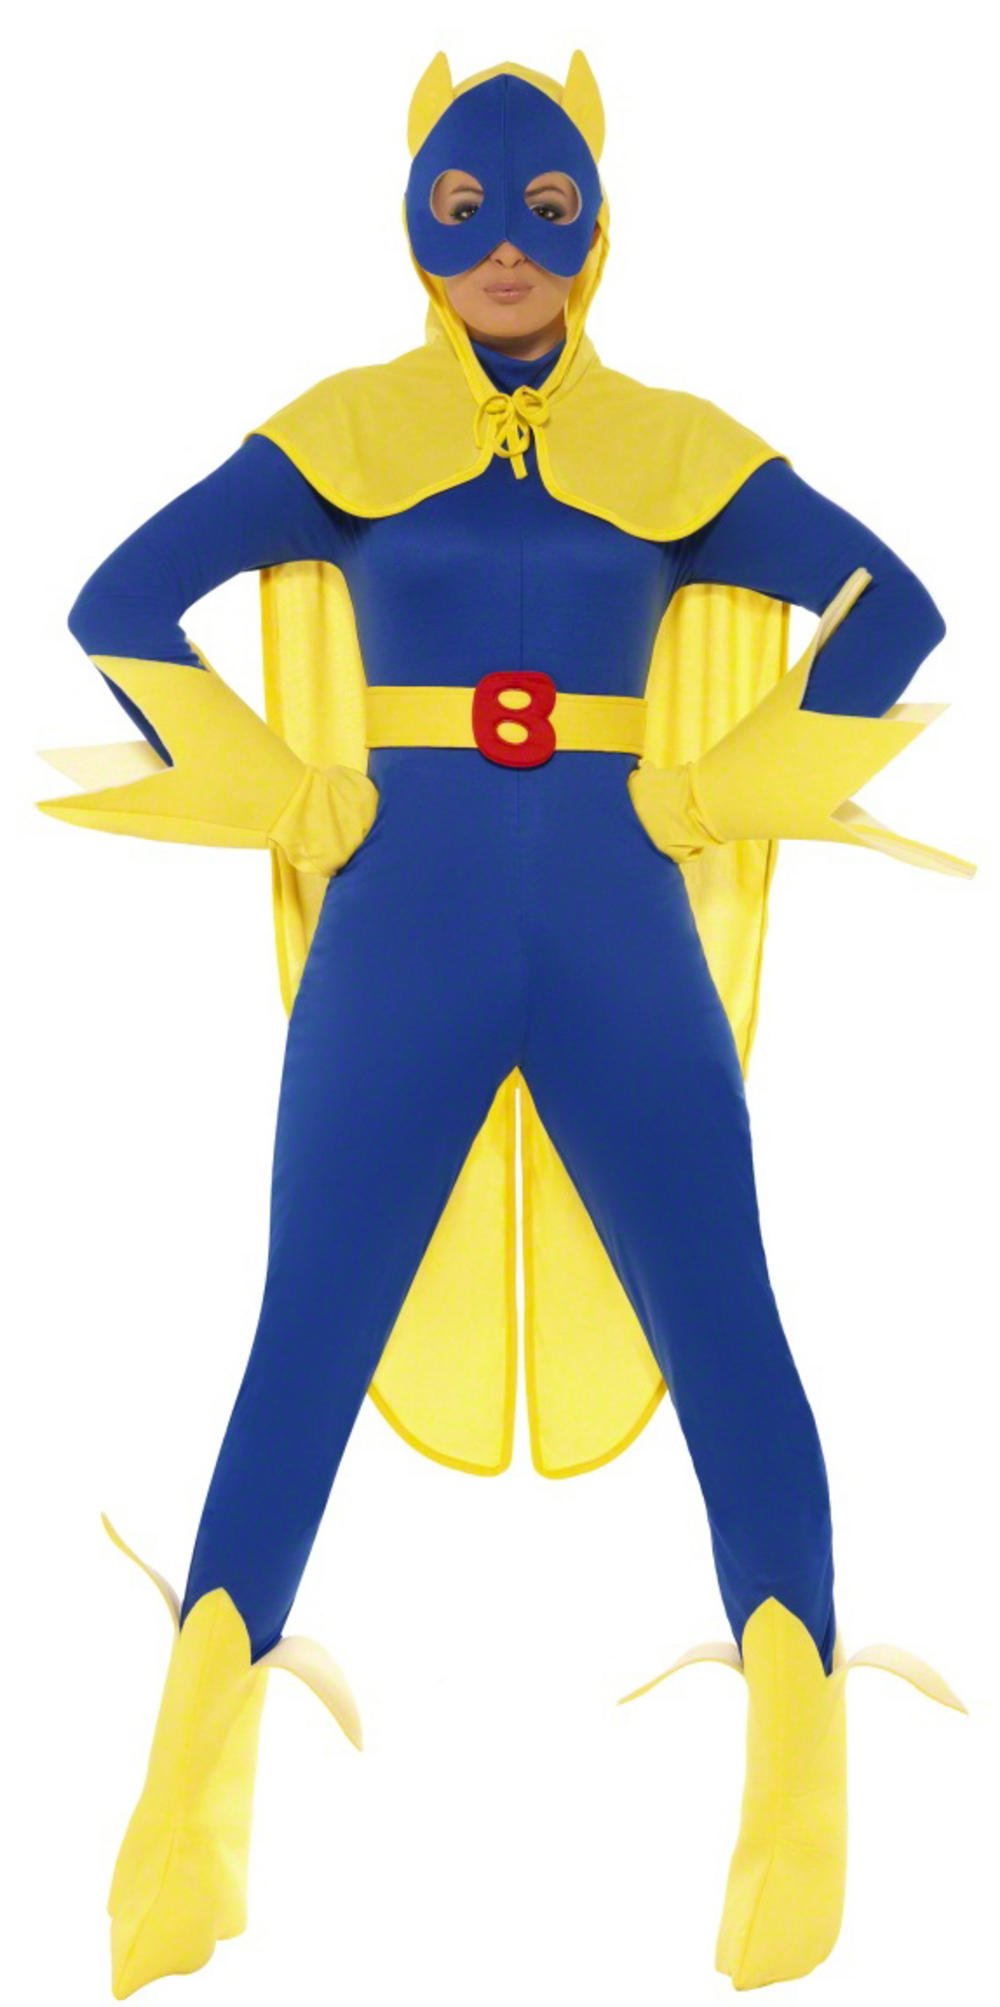 Bananawoman Costume